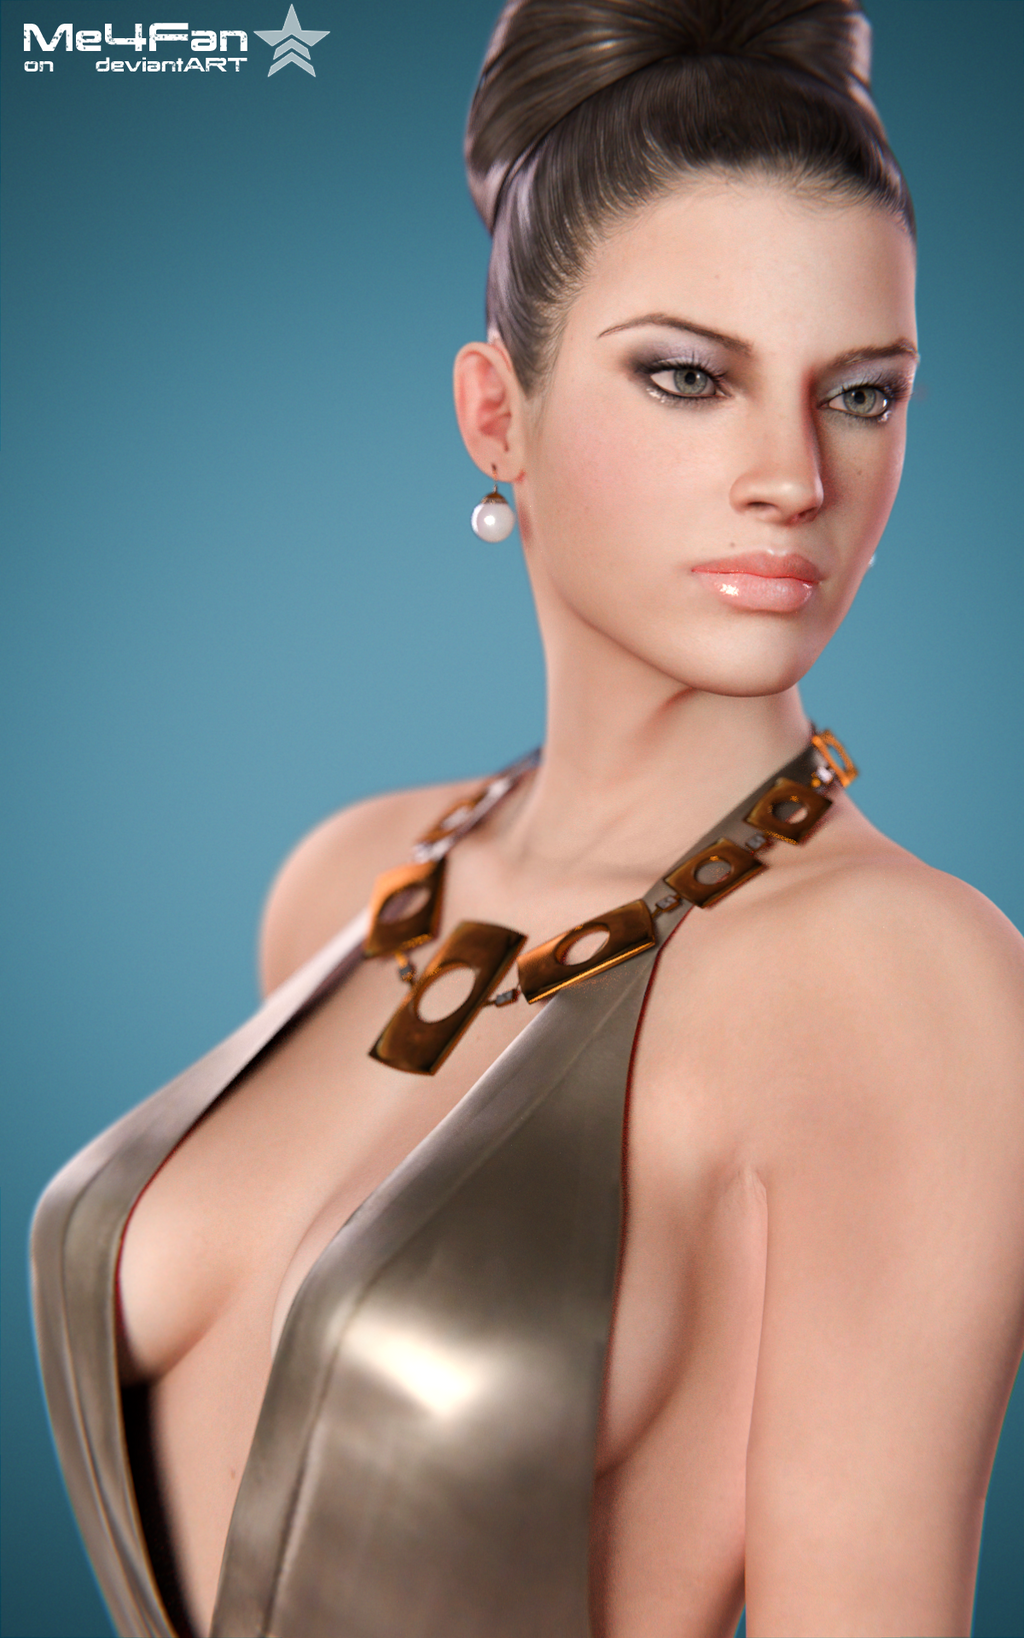 Resident evil excella nude — img 3